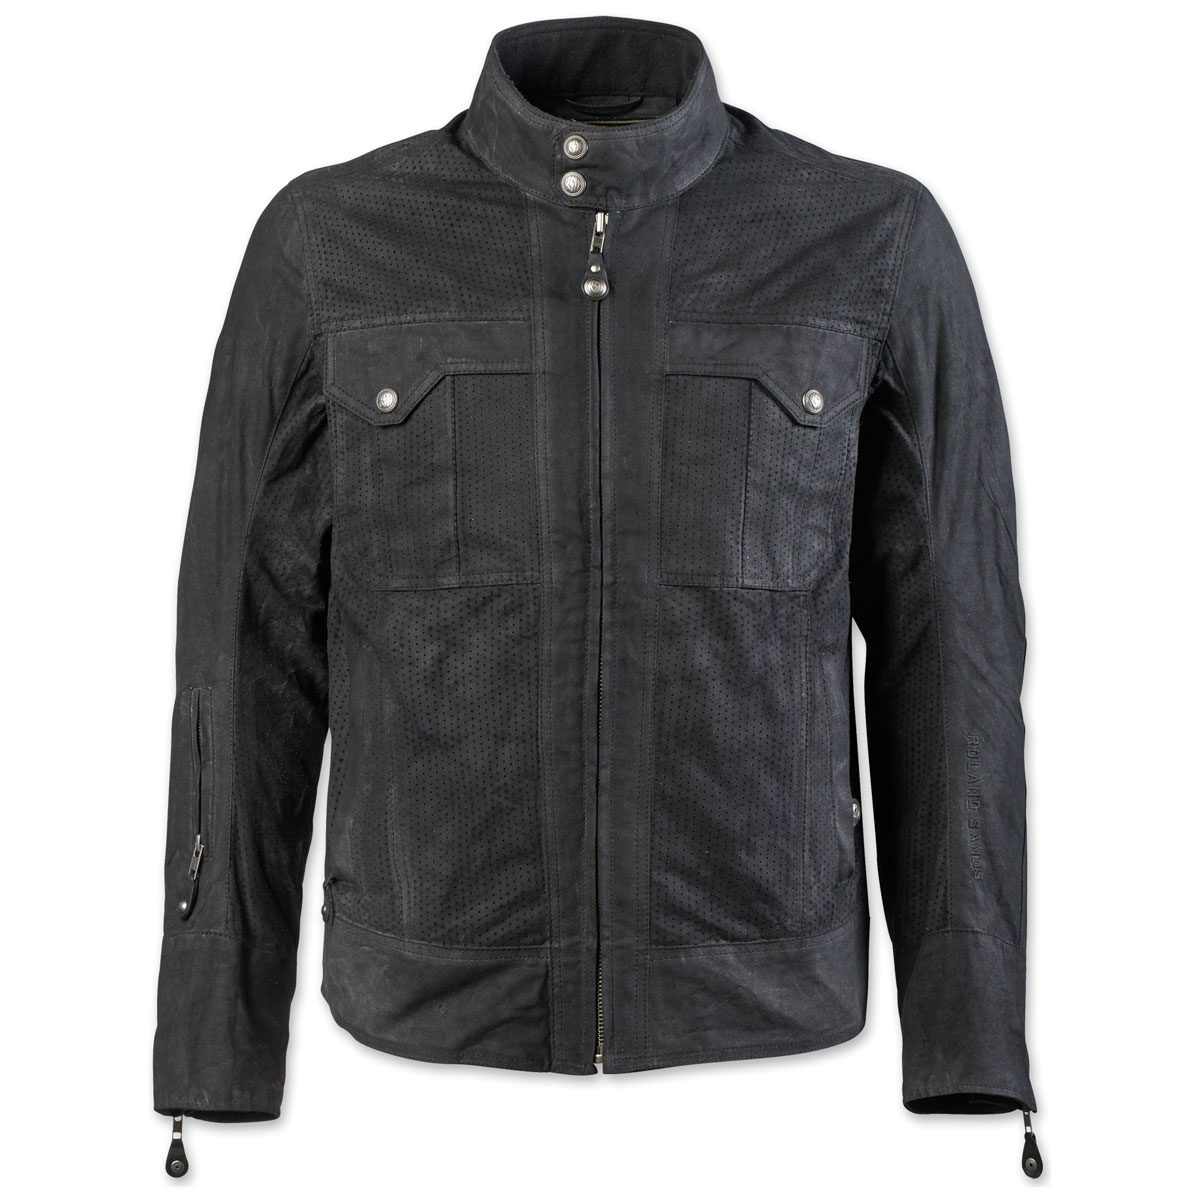 Roland Sands Design Apparel Men's Duro Perf Waxed Cotton Black Jacket